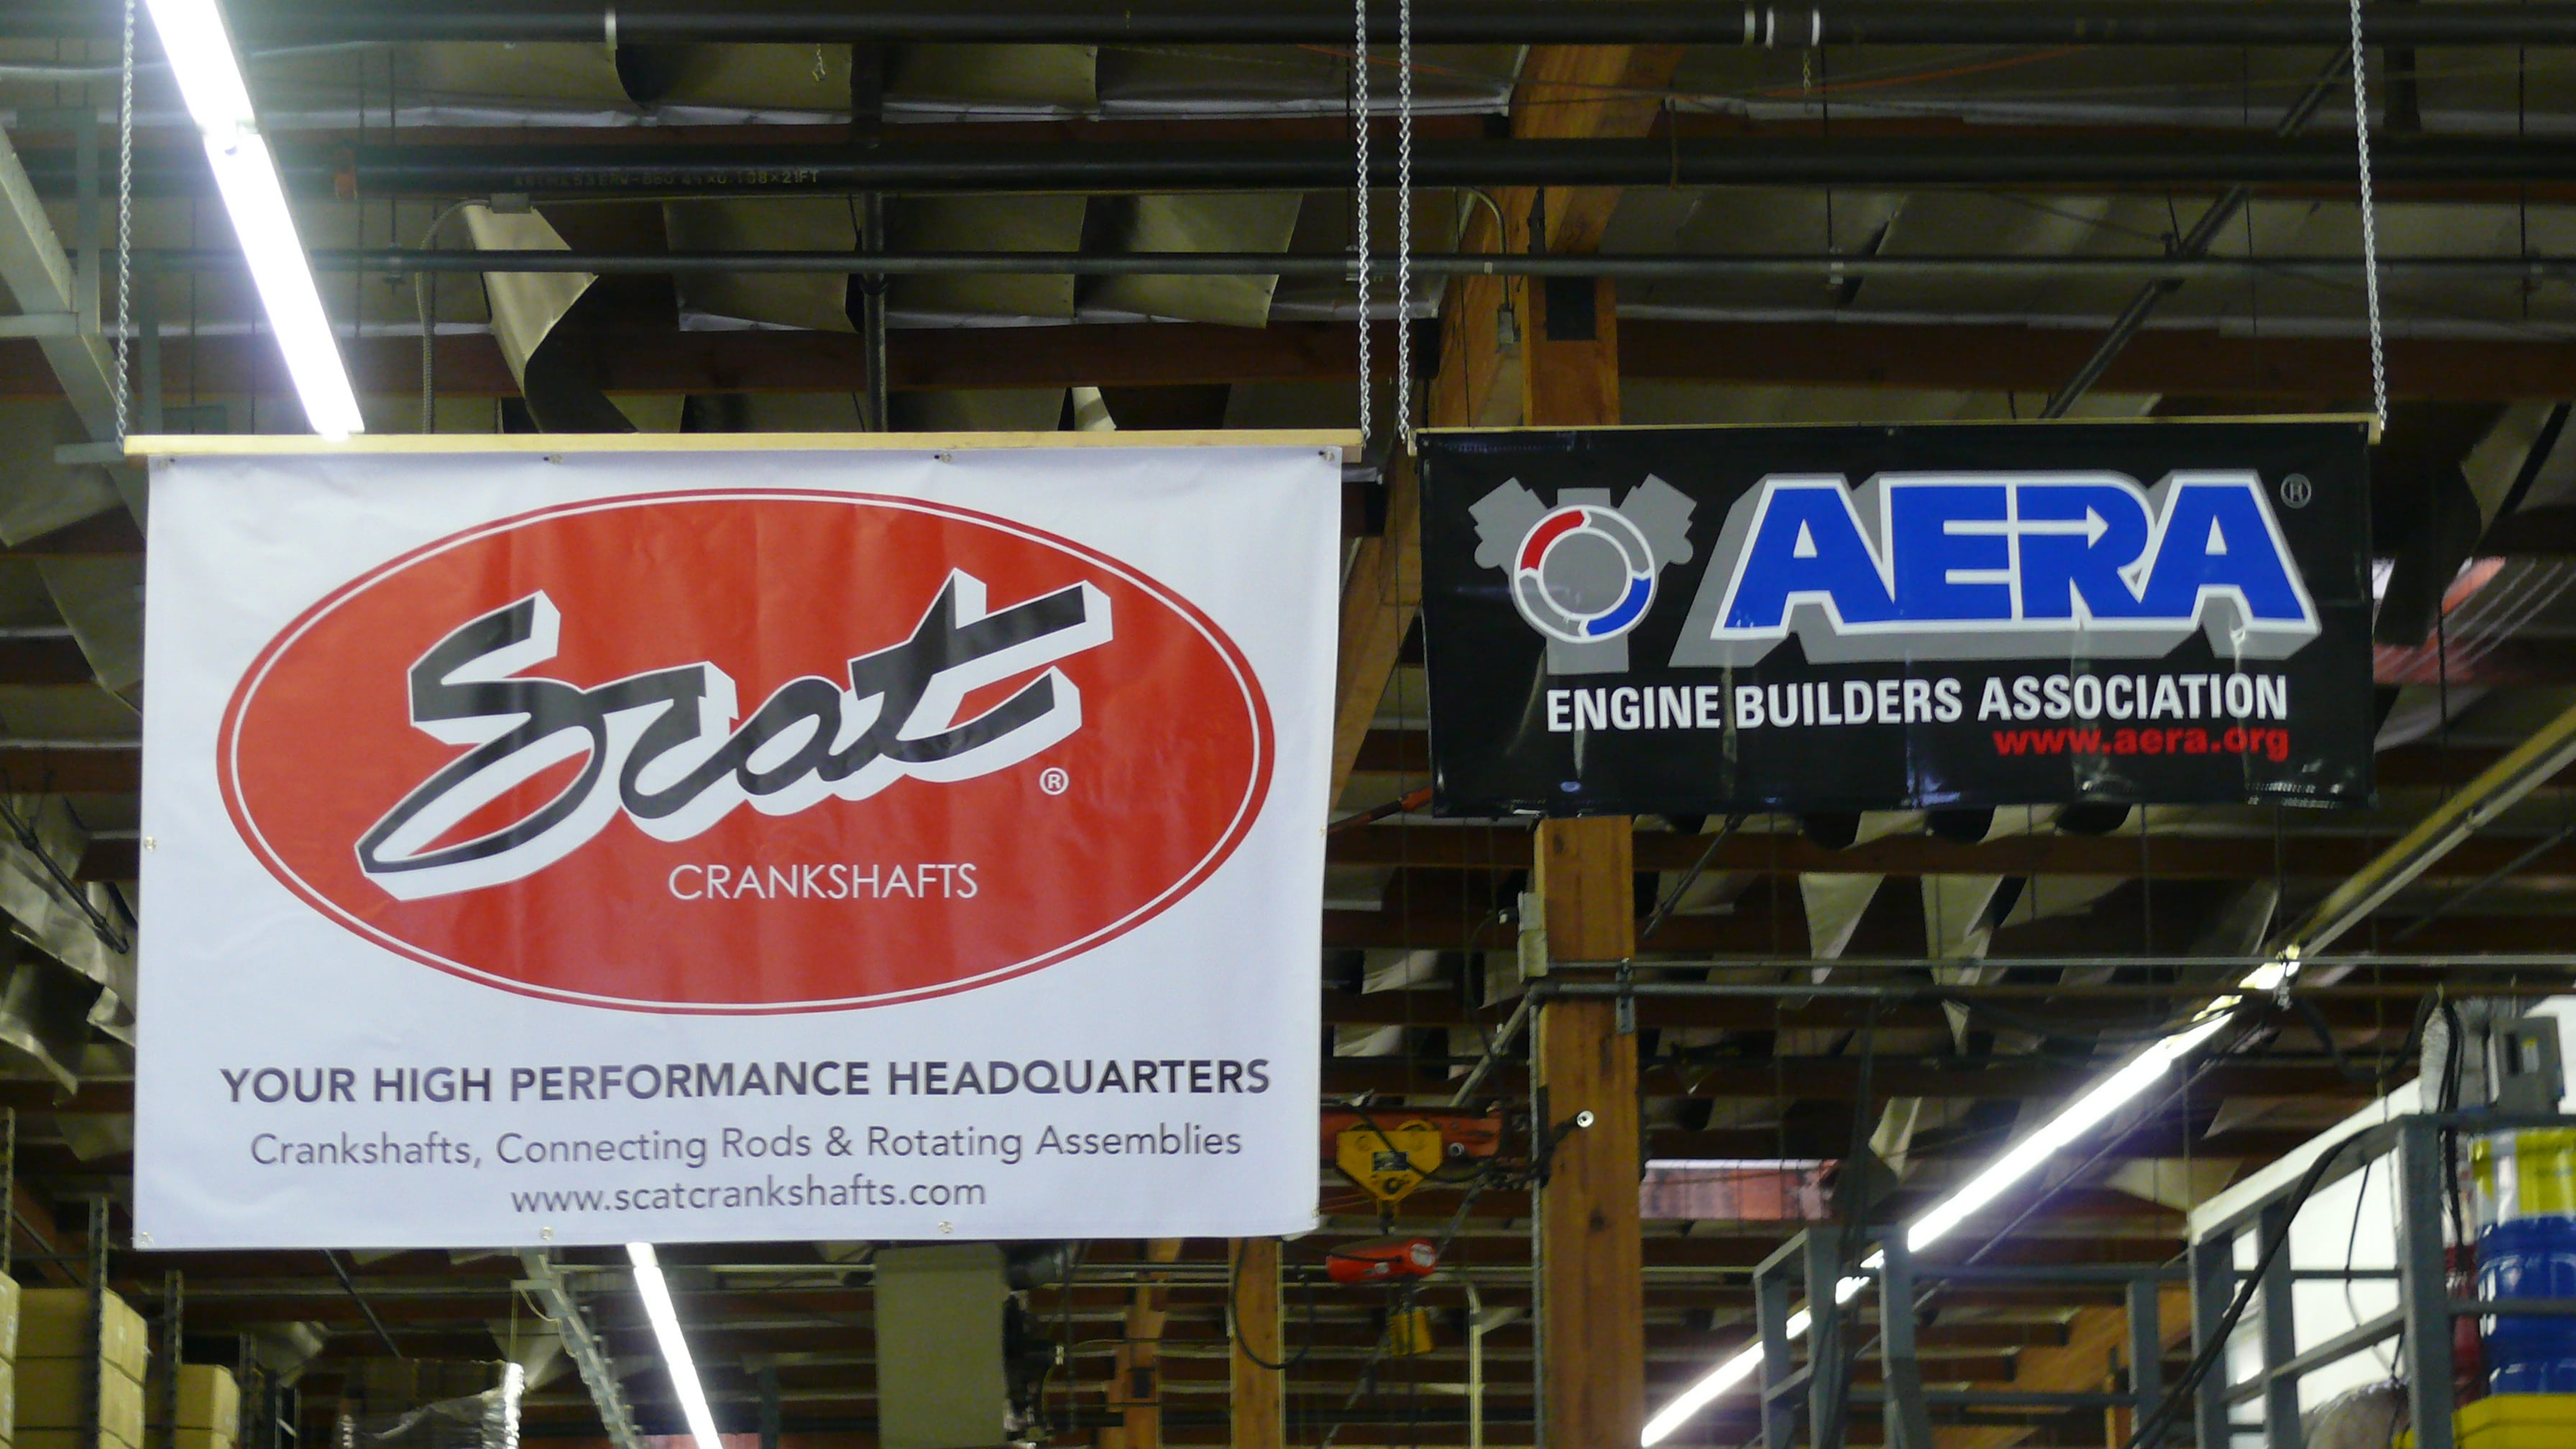 AERA Conference at SCAT Enterprises